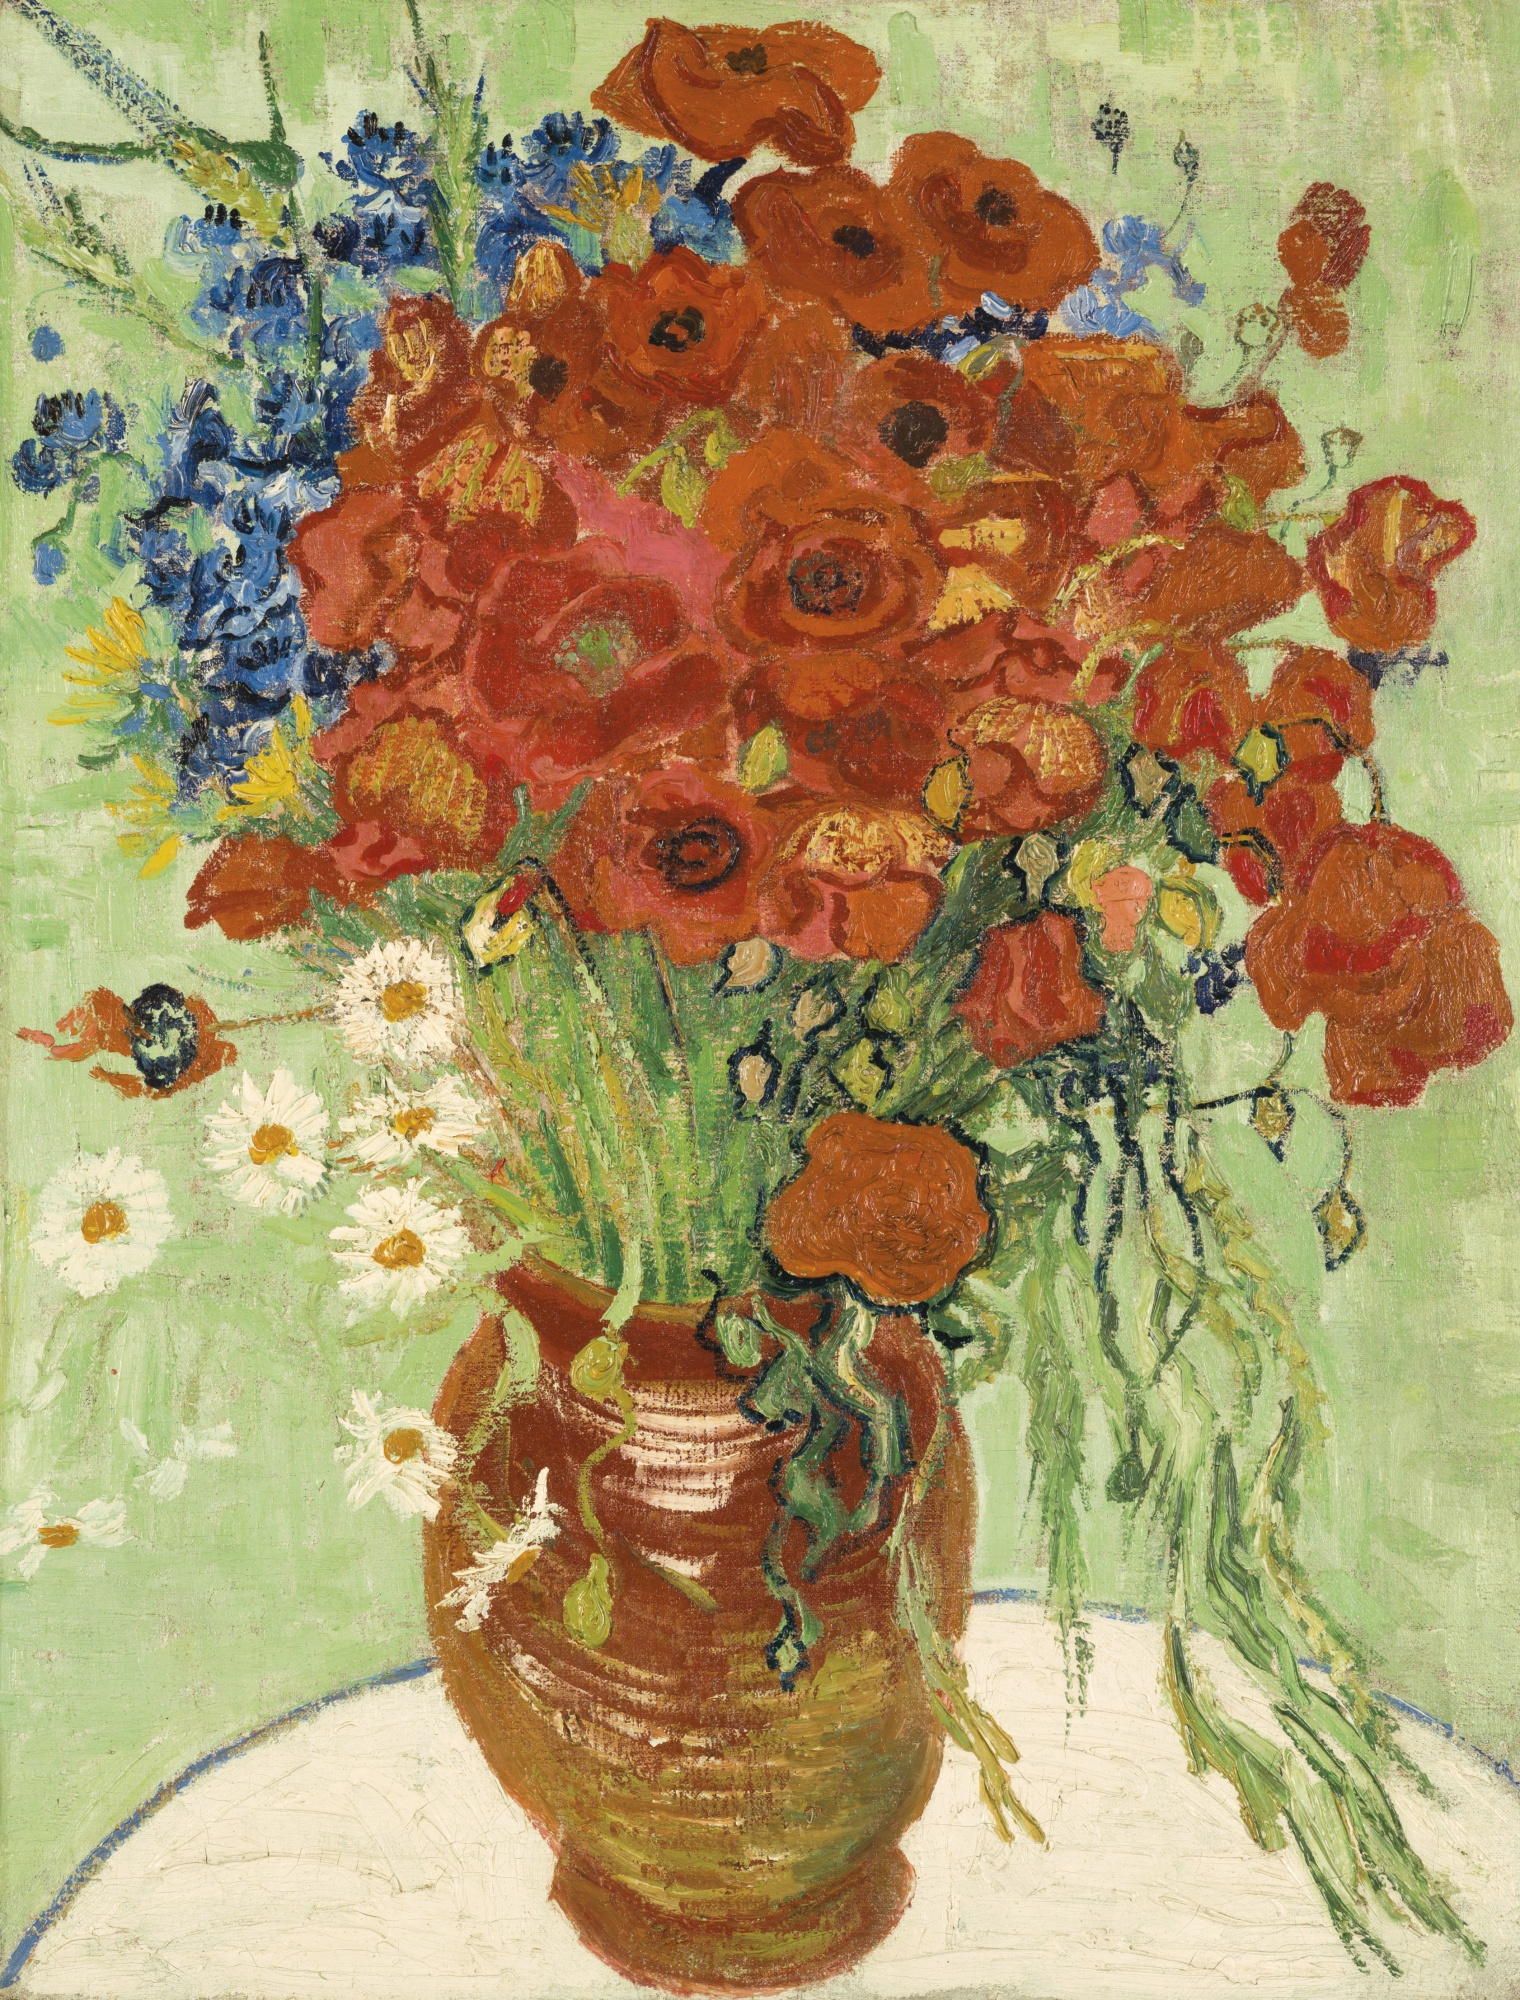 Filevincent van gogh vase with cornflowers and poppies f280 filevincent van gogh vase with cornflowers and poppies f280 jh2032g reviewsmspy